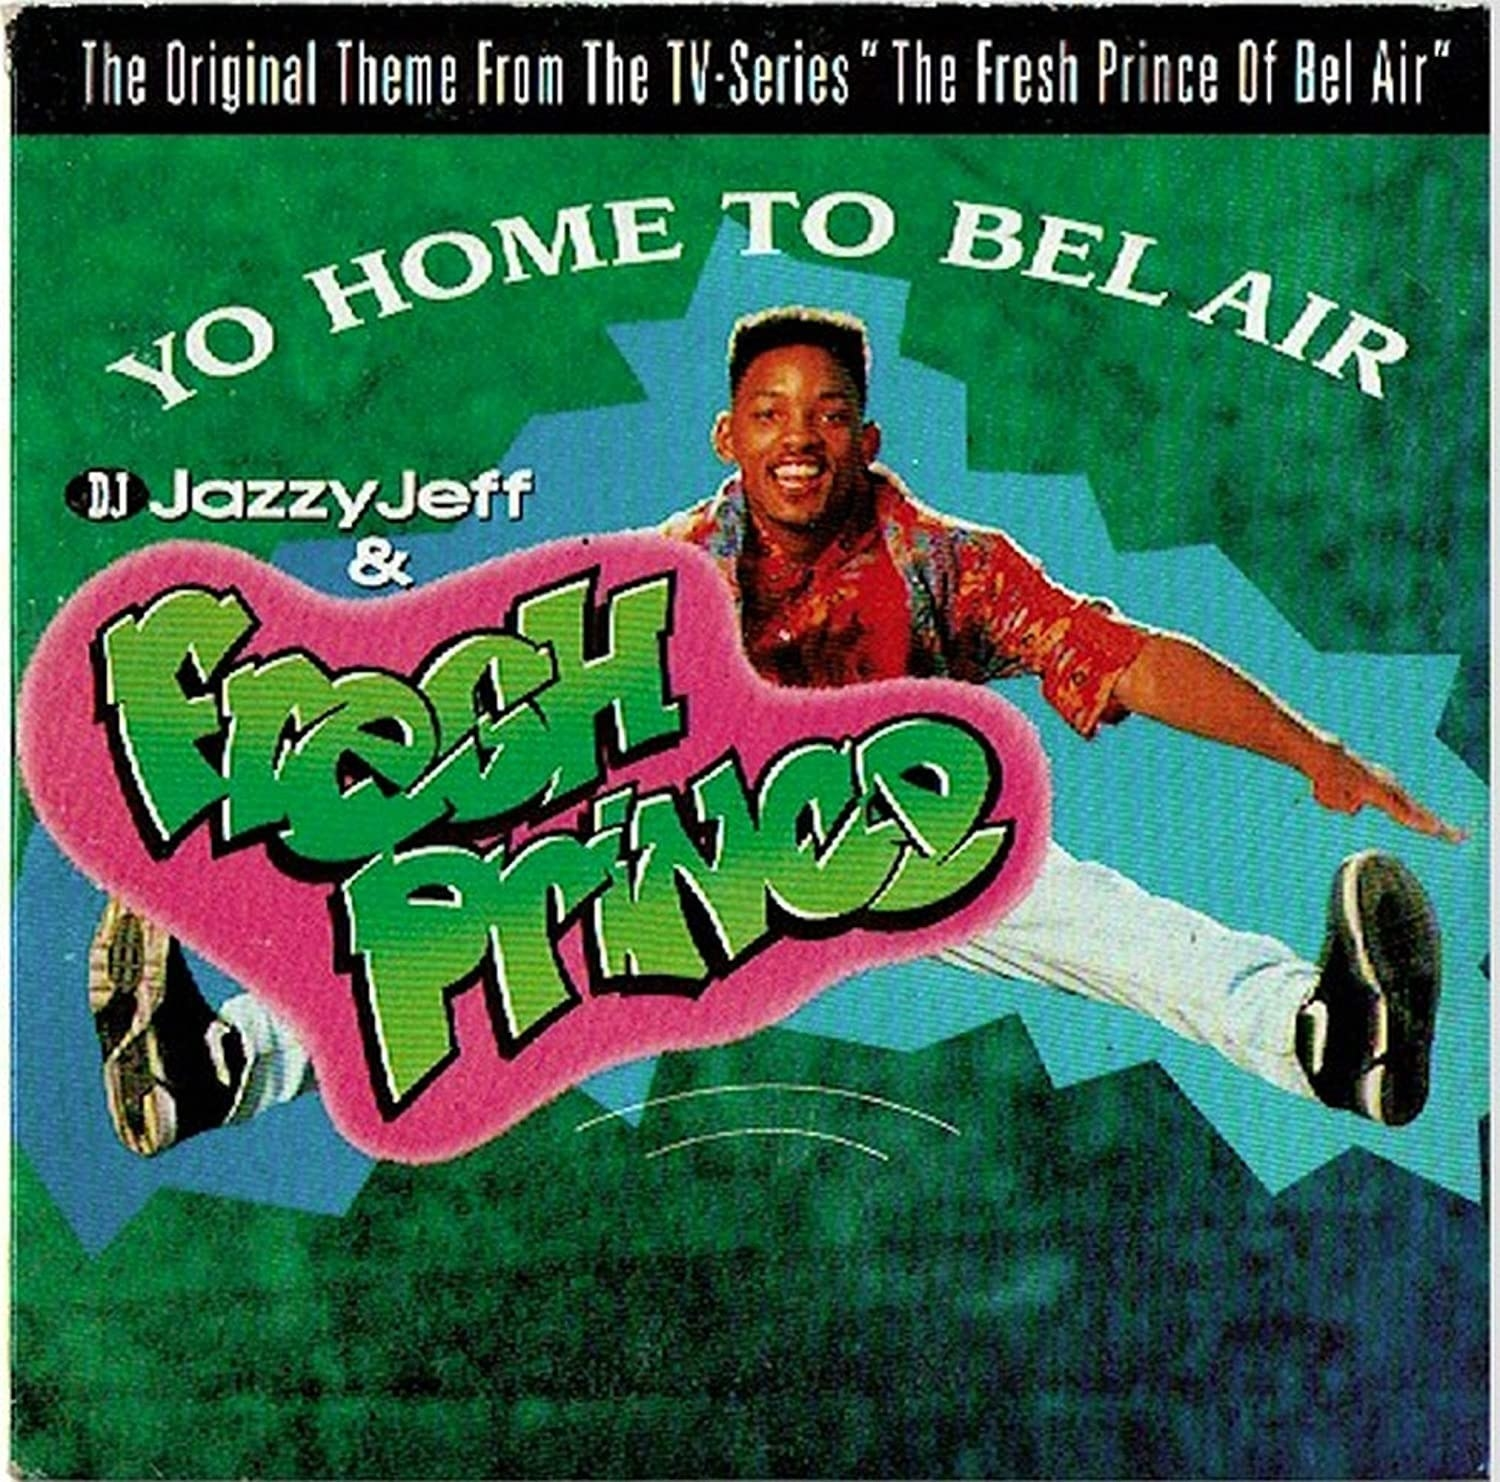 album cover of Yo Home to Bel-Air showing Will Smith doing a jumping split